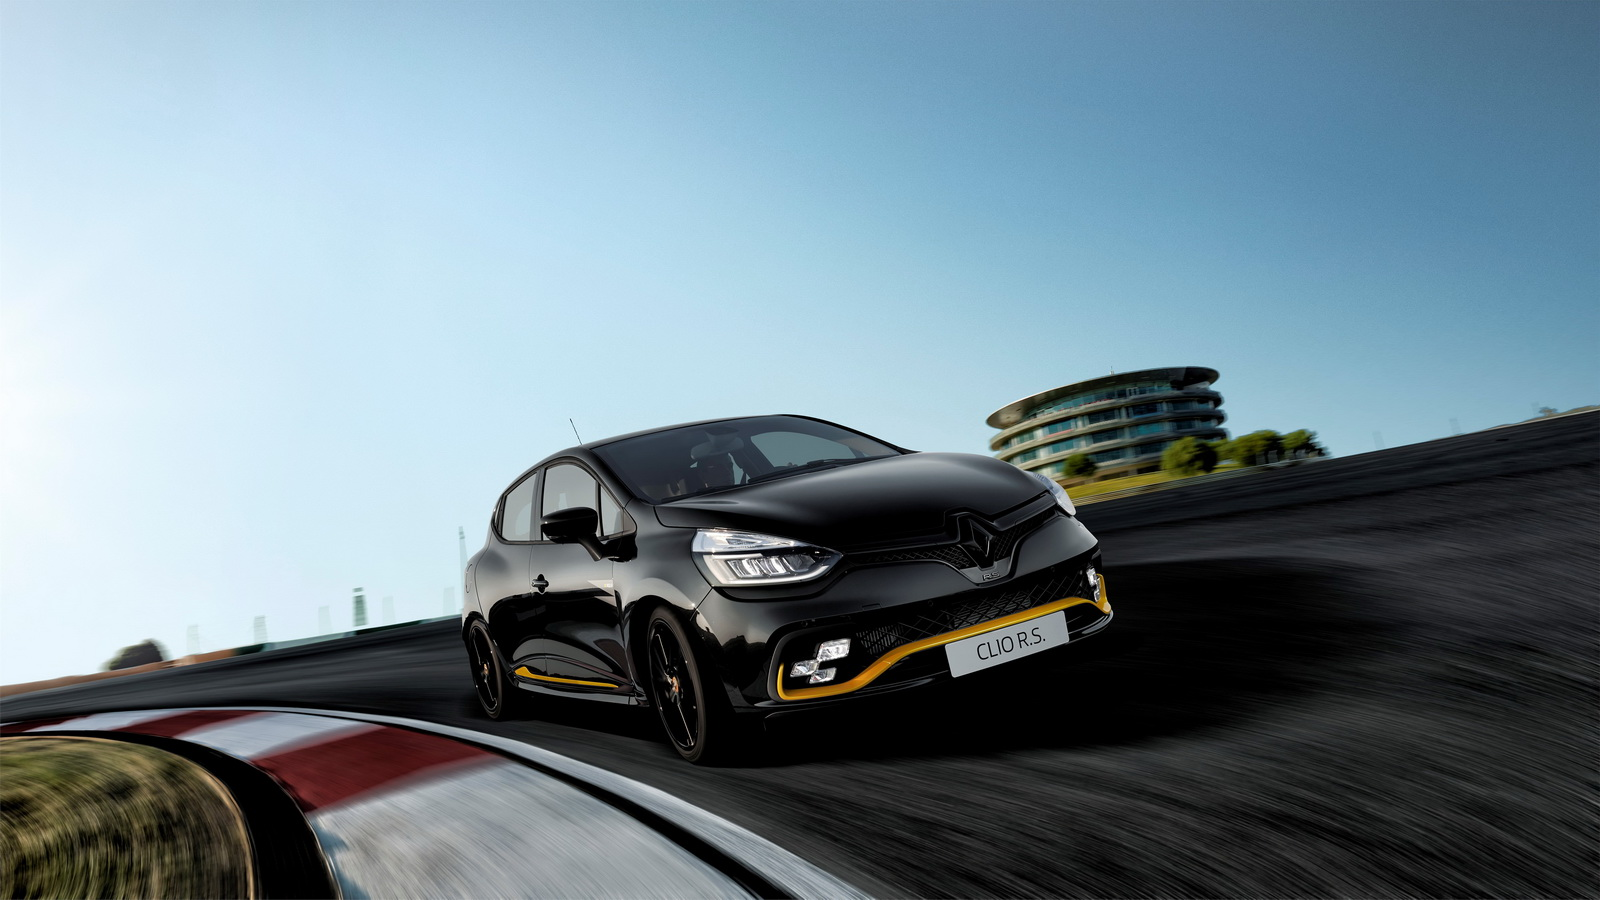 2018-renault-clio-rs-18-limited-edition-2.jpg